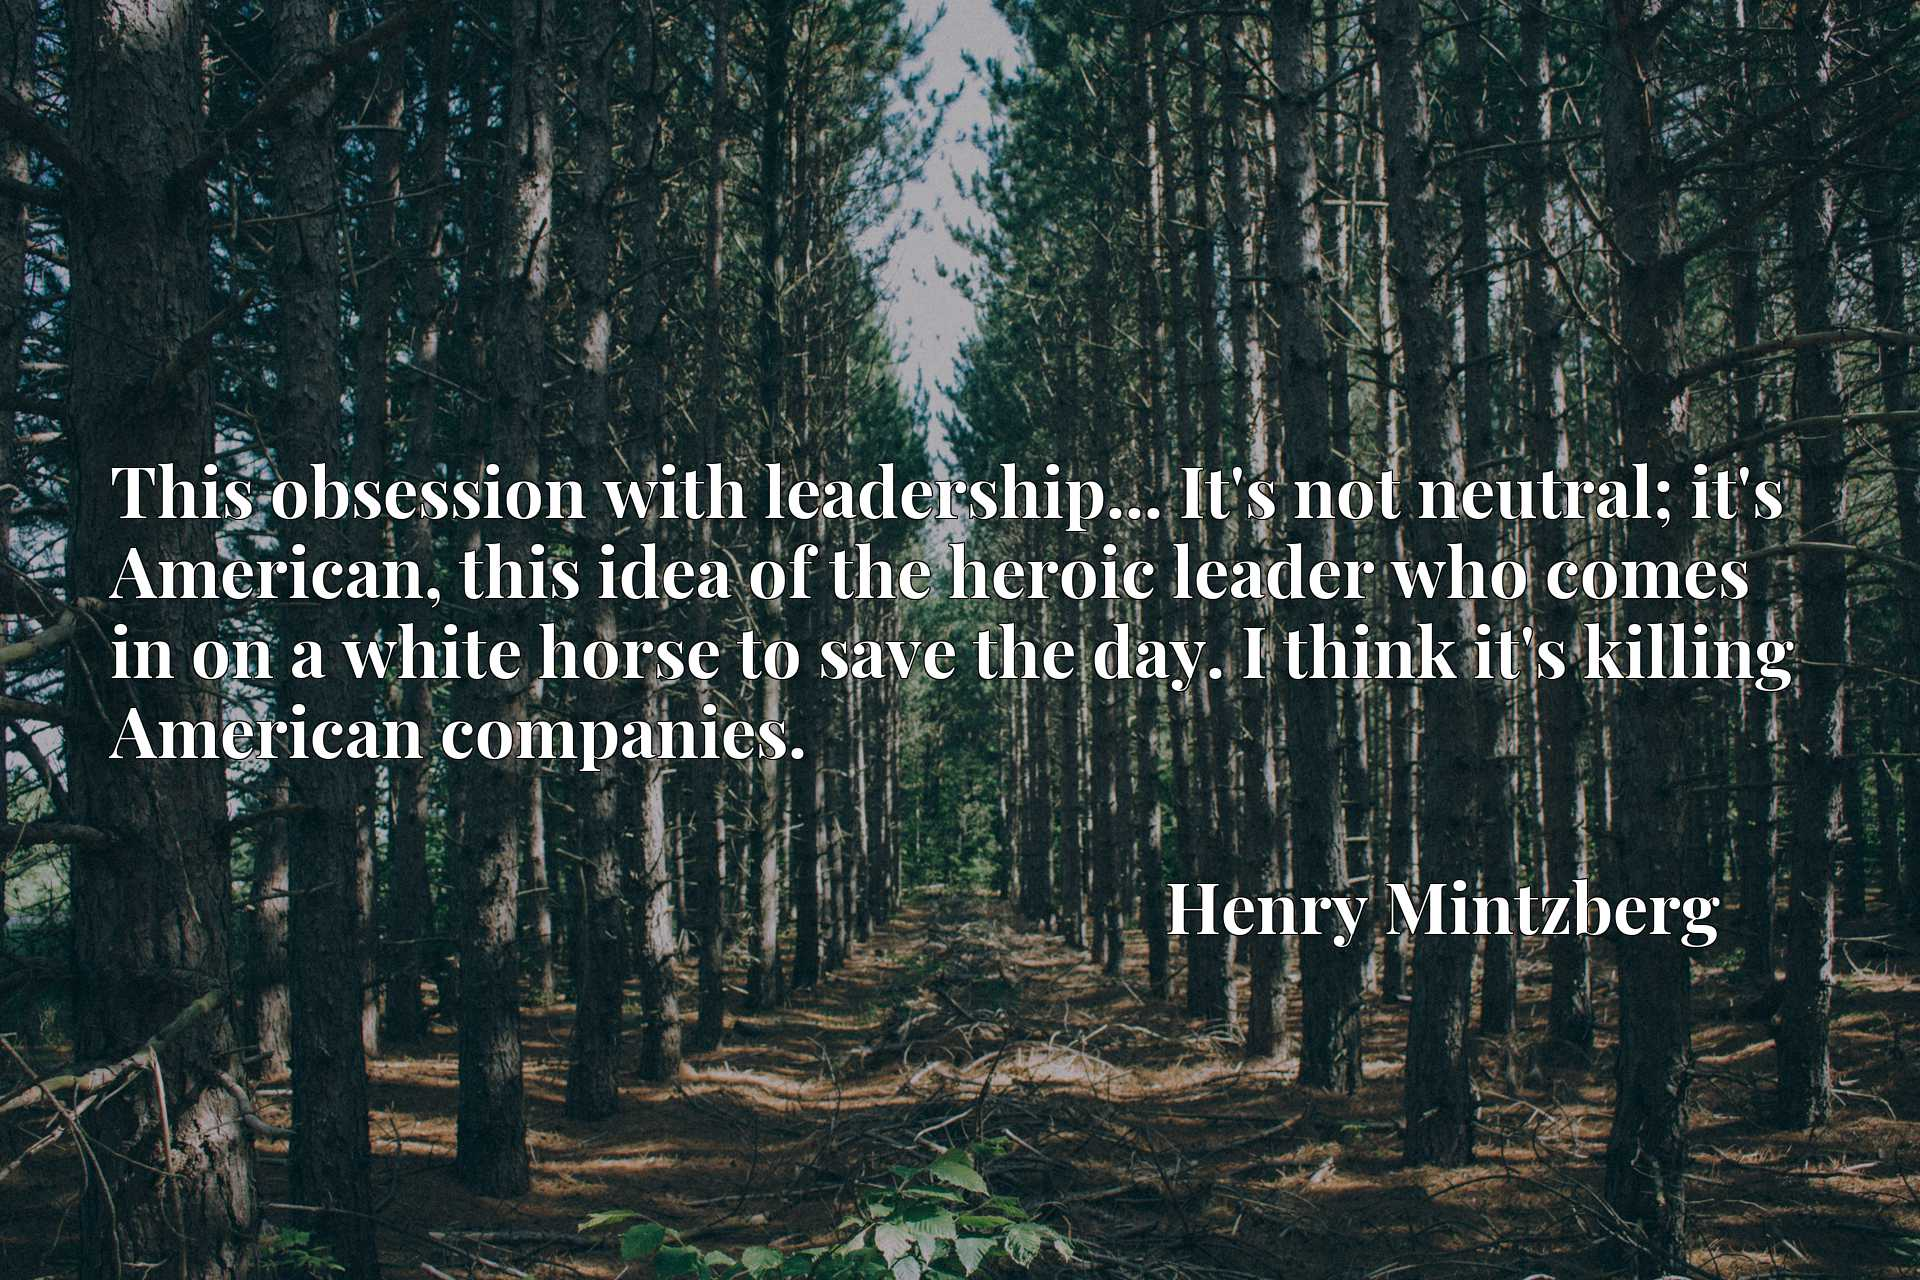 Quote Picture :This obsession with leadership... It's not neutral; it's American, this idea of the heroic leader who comes in on a white horse to save the day. I think it's killing American companies.